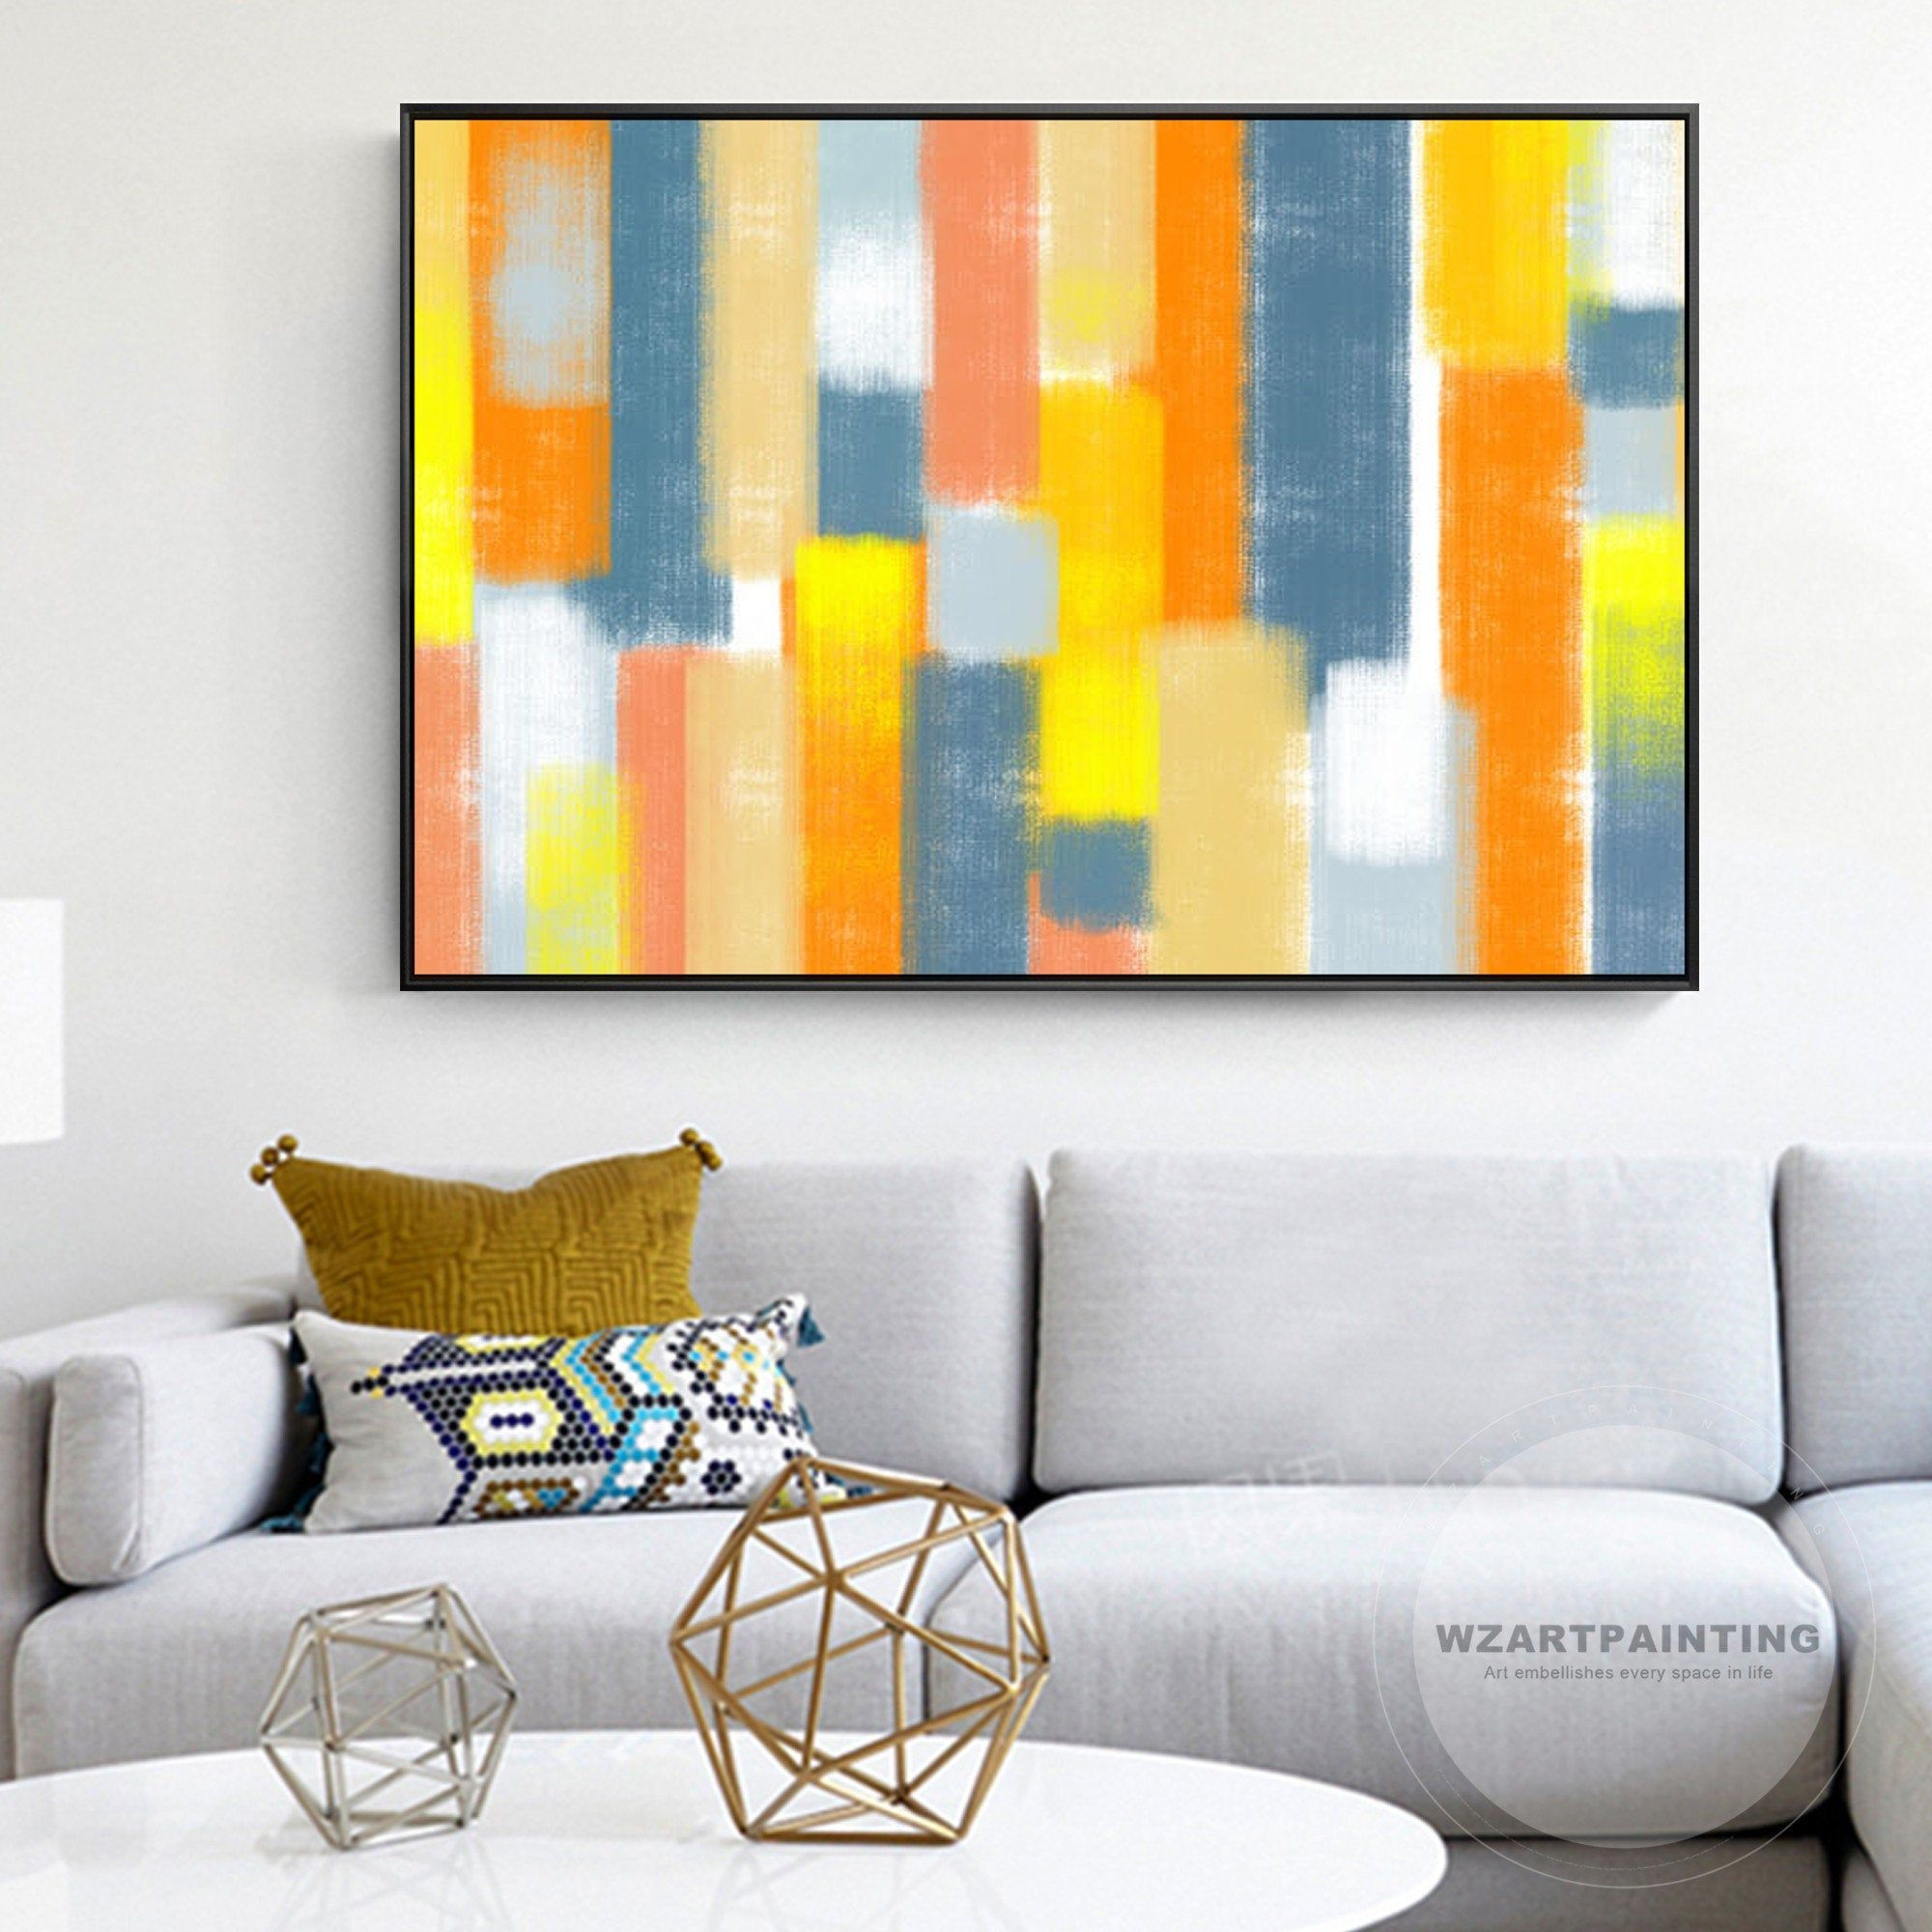 Modern Abstract Orange Blue White Wall Art Print Painting On Canvas Luxury Large Wall Art Picture Framed Liv White Wall Art Wall Decor Pictures Wall Art Prints